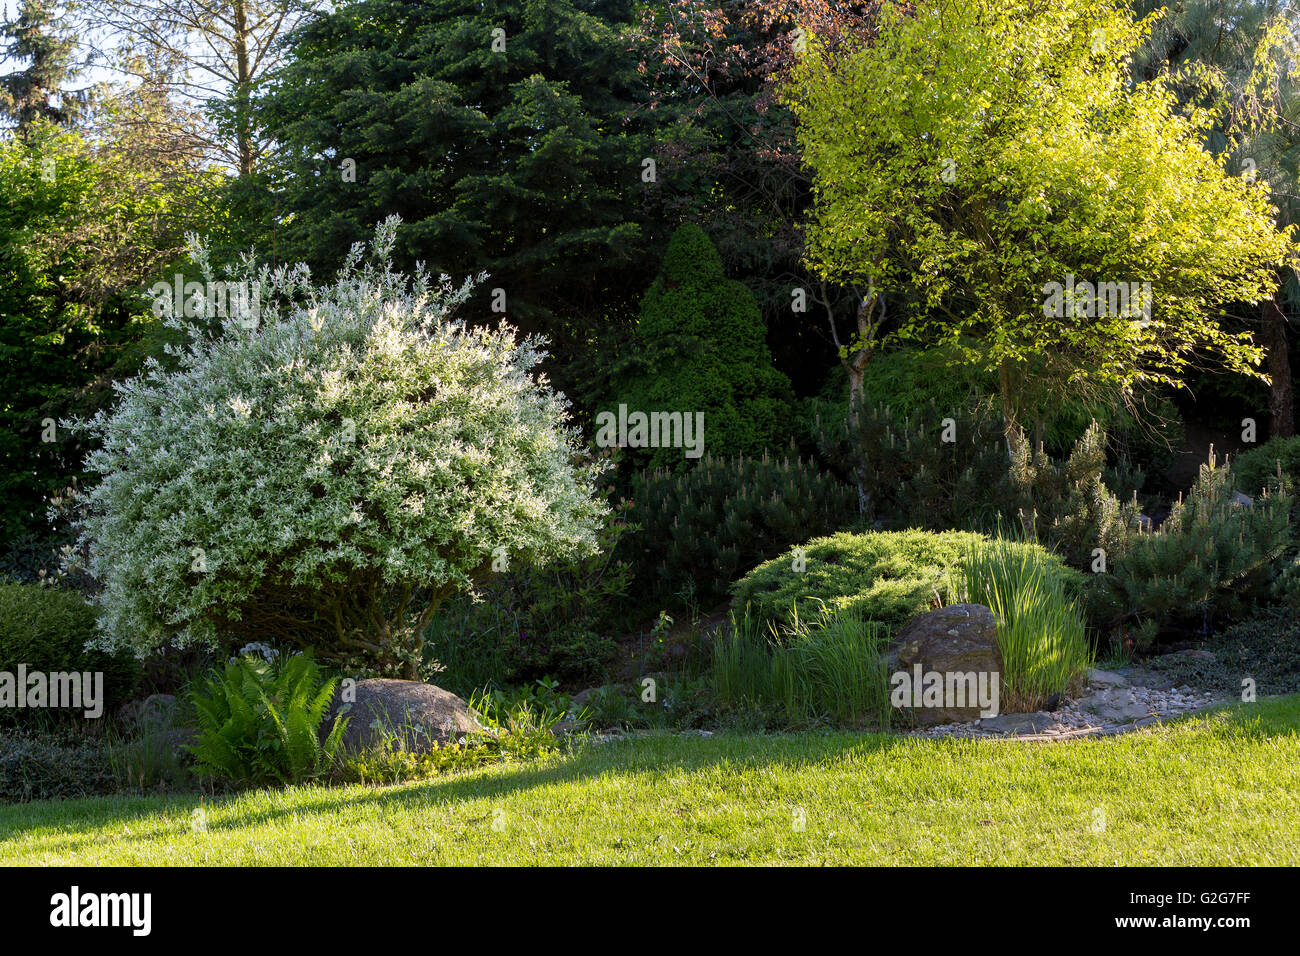 Beautiful Spring Garden Design With Conifer Trees Green Grass And Stock Photo Alamy